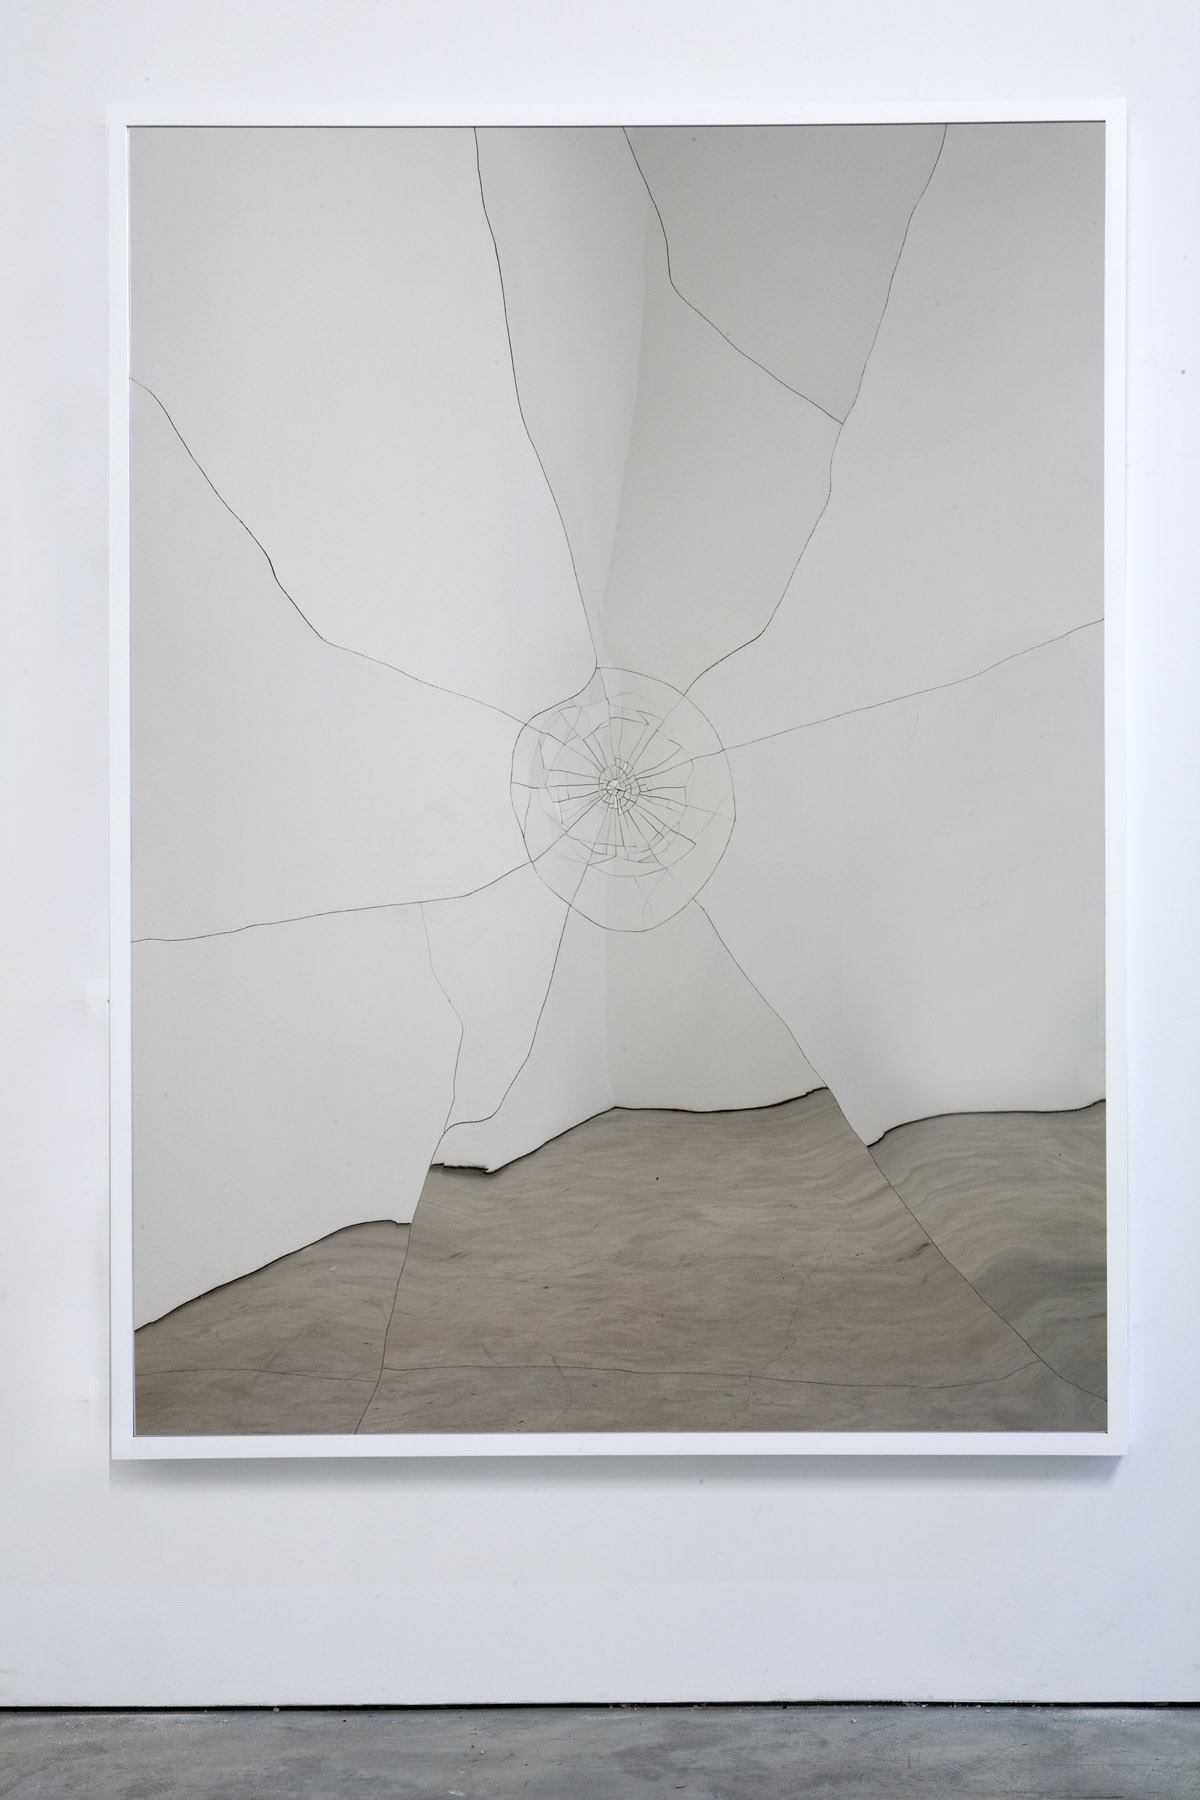 Hand-cut stainless steel on panel, artist's frame 61.3 x 49.75 inches (155.7 x 126.4 cm) - Marc Straus Gallery